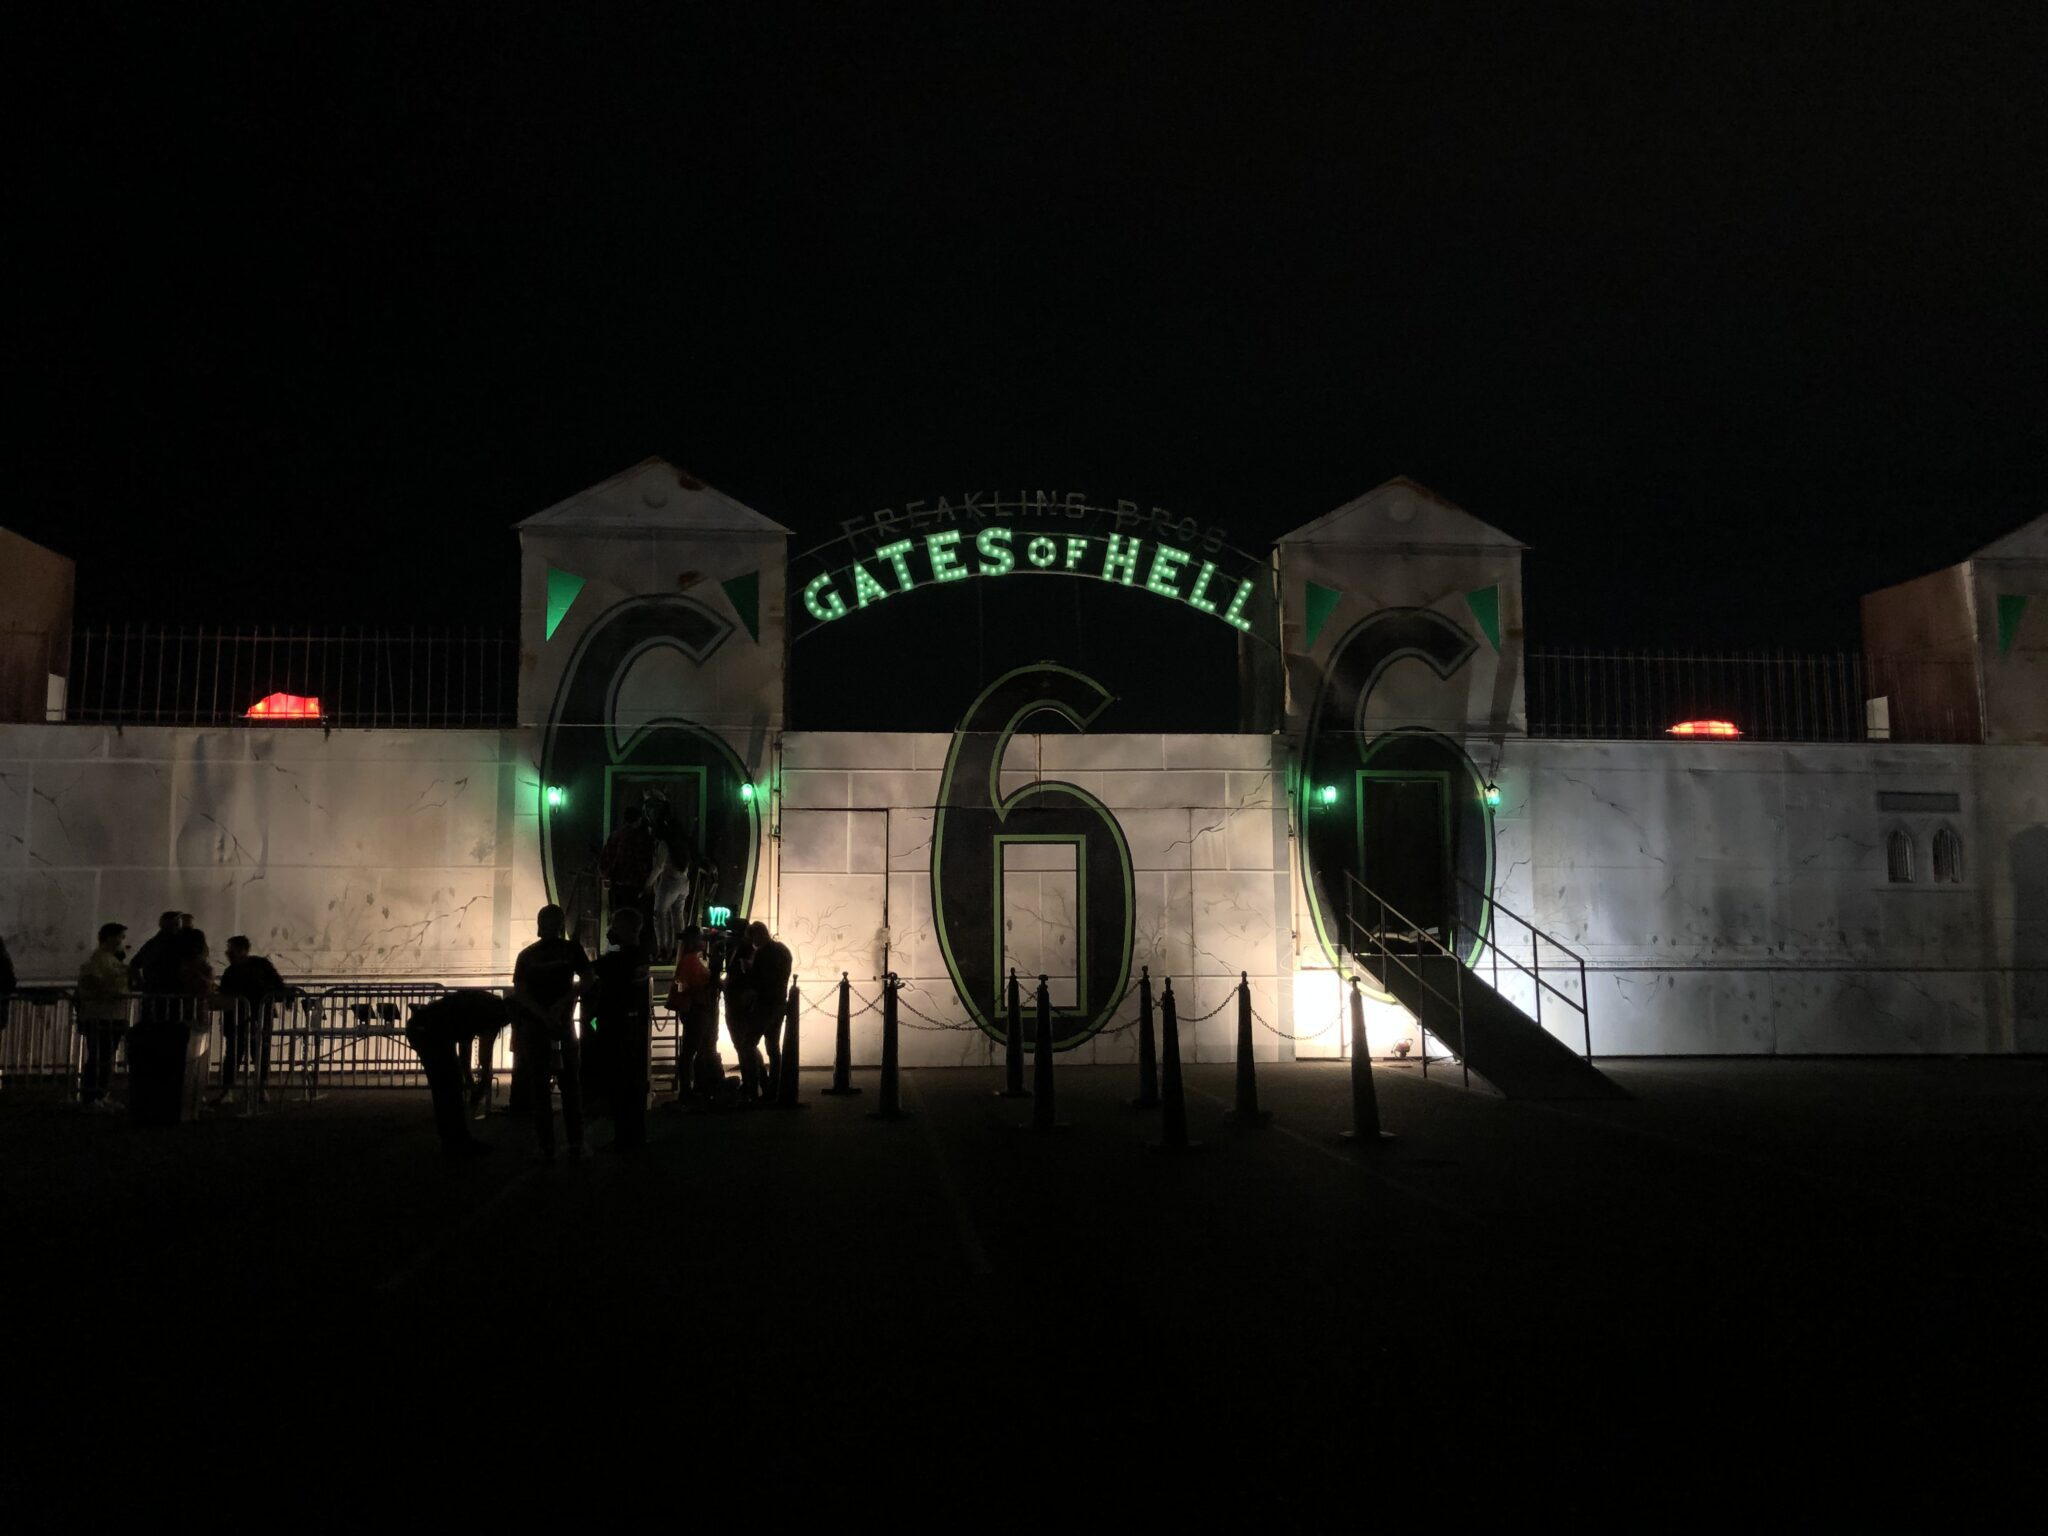 Freakling Bros. Horror Shows - Gates of Hell - Haunted Houses